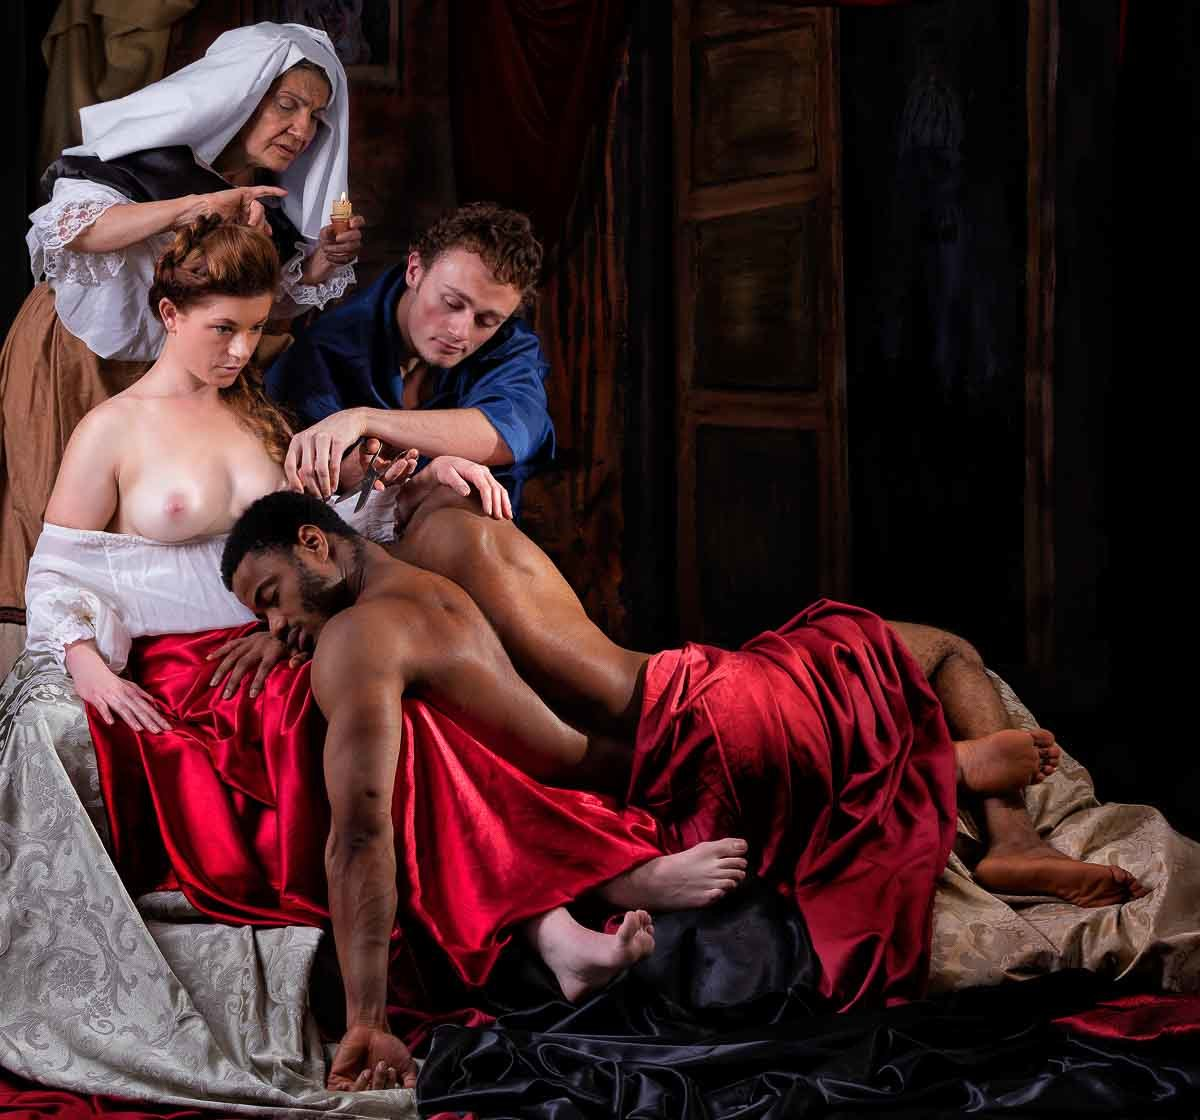 Fine art photography in studio inspired by Samson and Delilah by Peter Paul Rubens